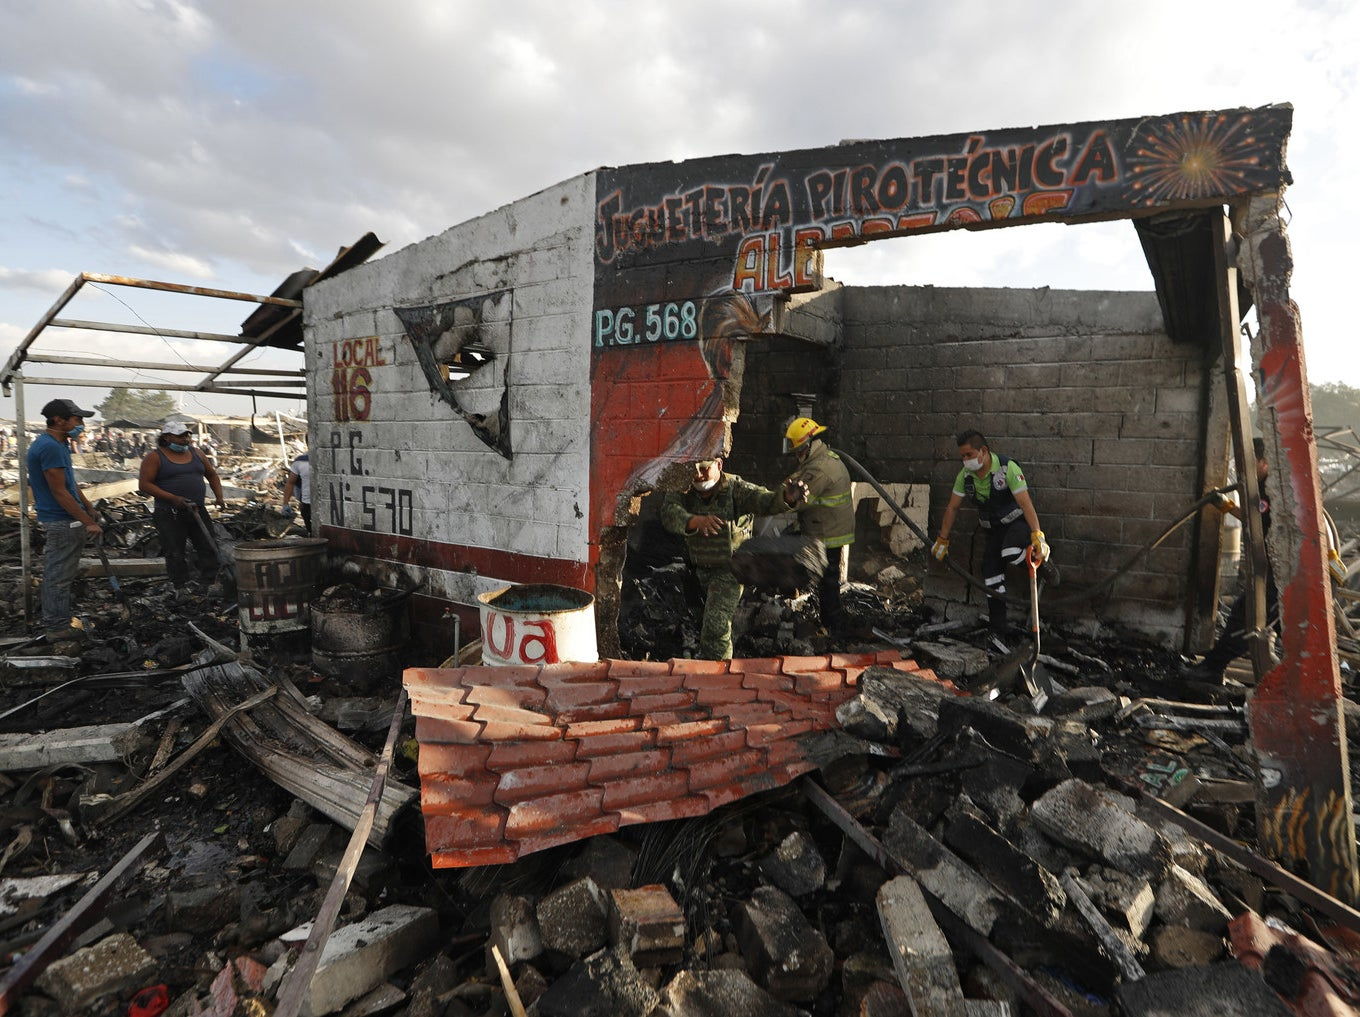 Firefighters and rescue workers search the charred ruins of the open-air market.